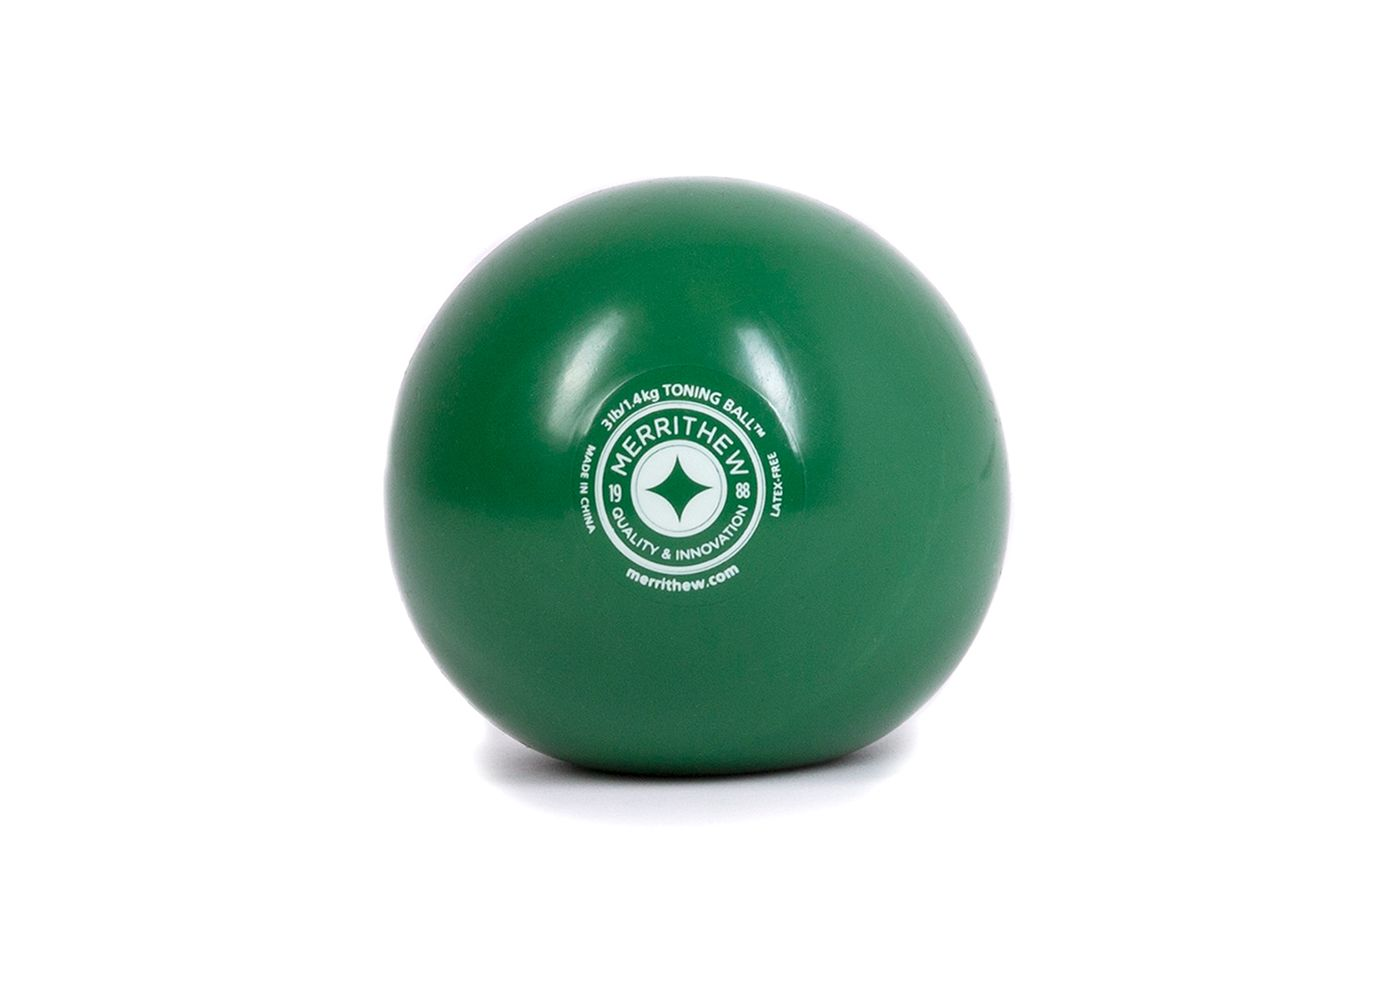 STOTT PILATES 3 lb Toning Ball